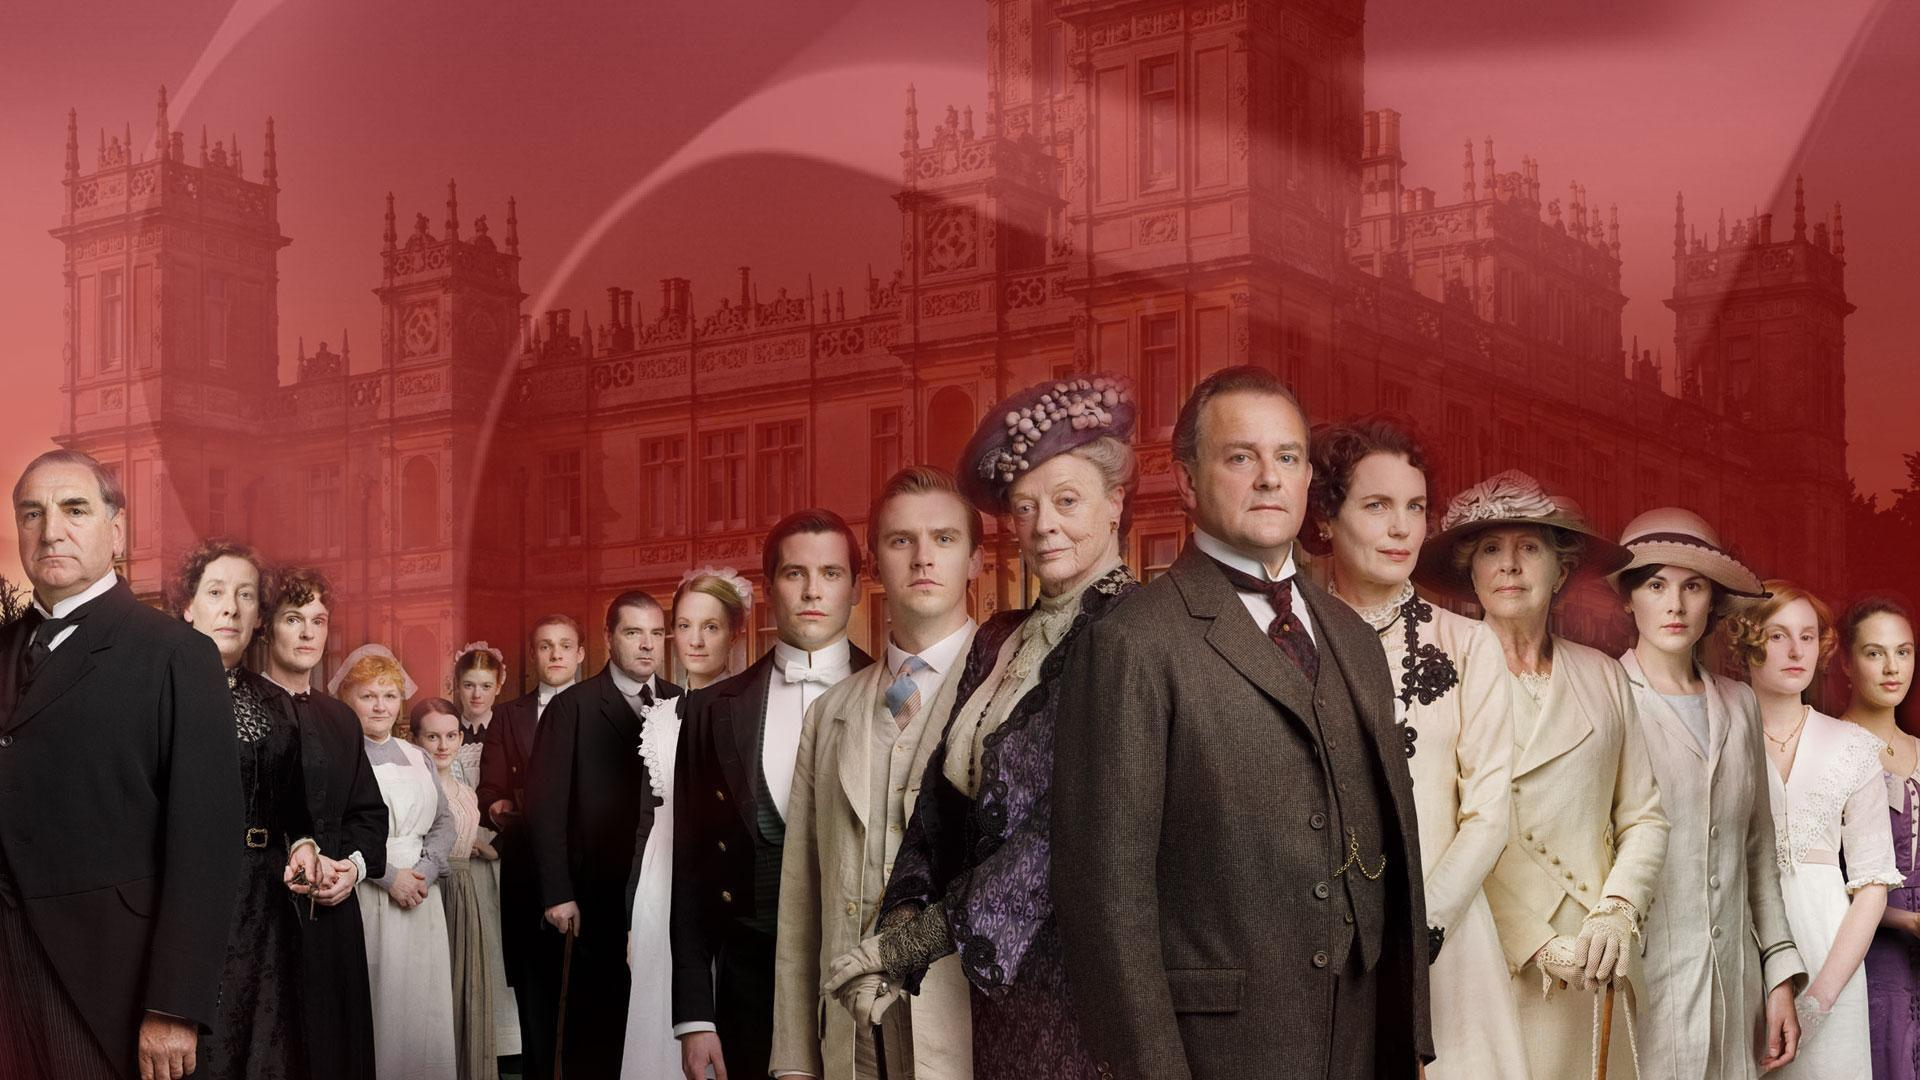 The Downton Abbey Cast Signature Image